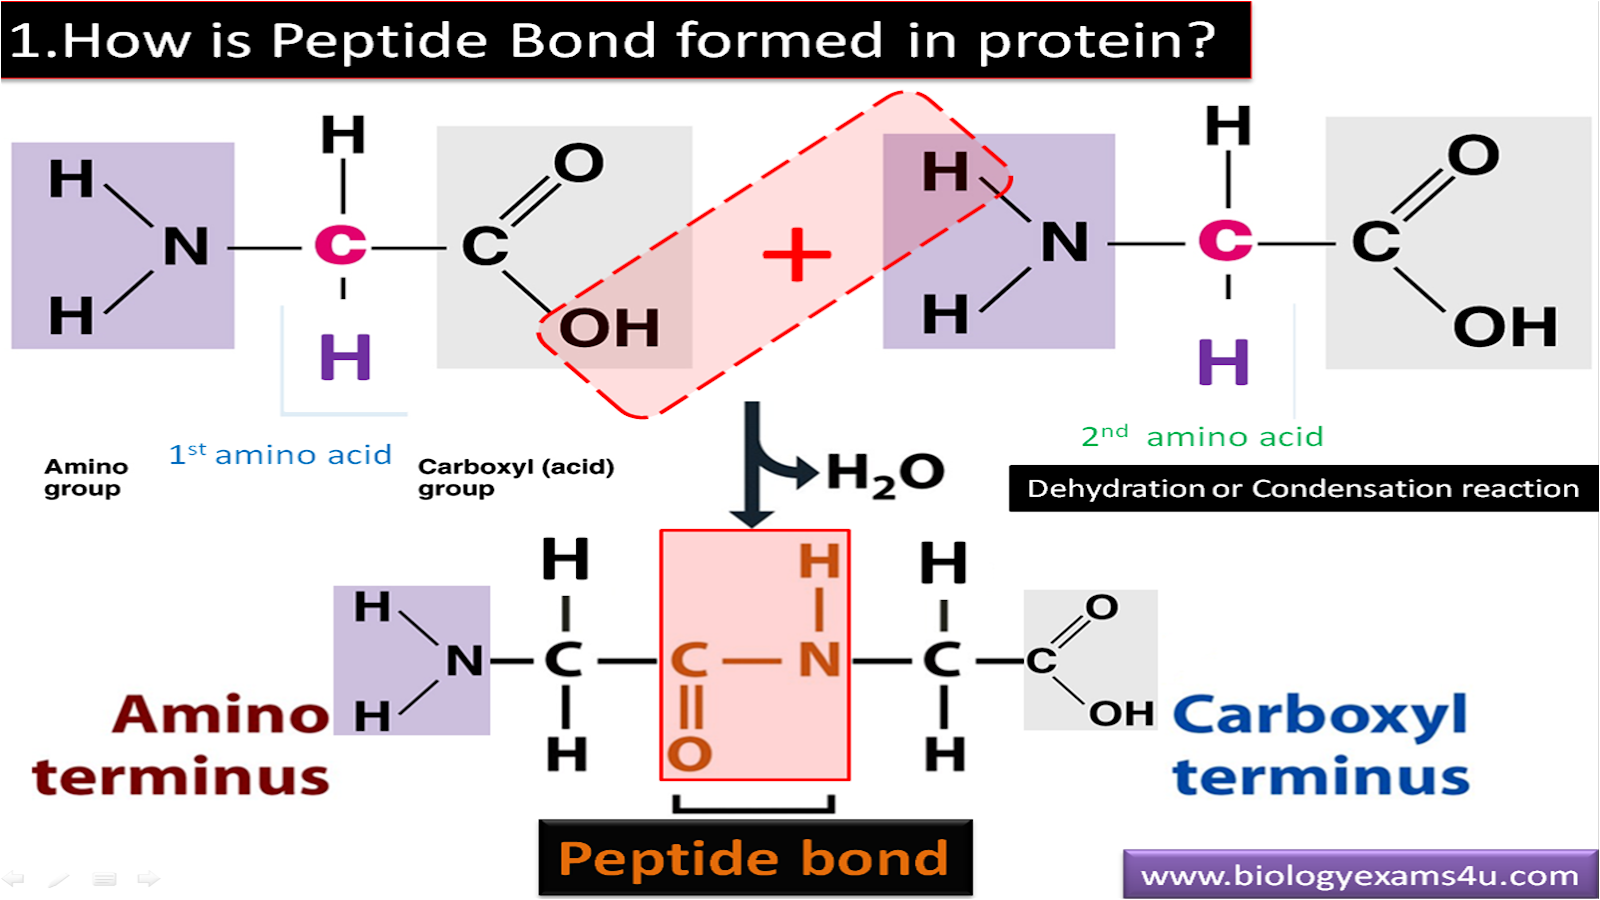 How is peptide bond formed in protein